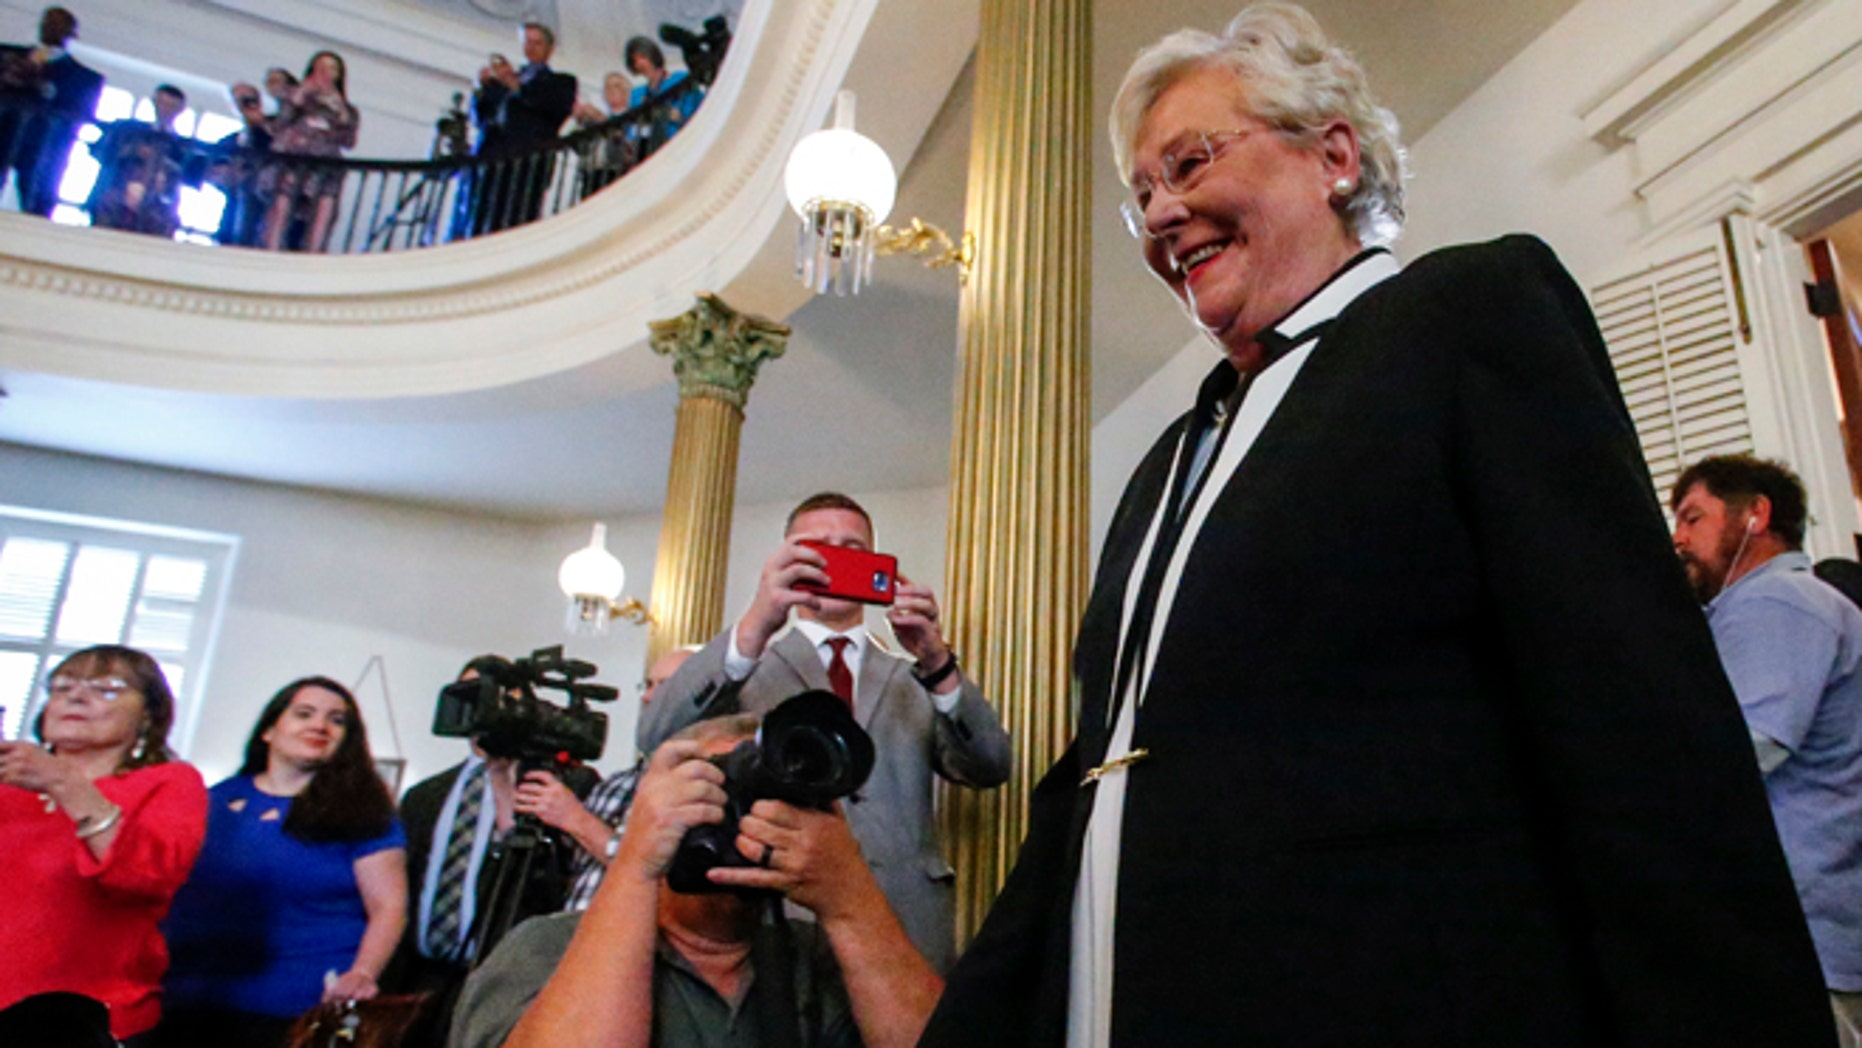 April 10, 2017: Kay Ivey walks in to be sworn in as the next Governor of Alabama in Montgomery, Ala.